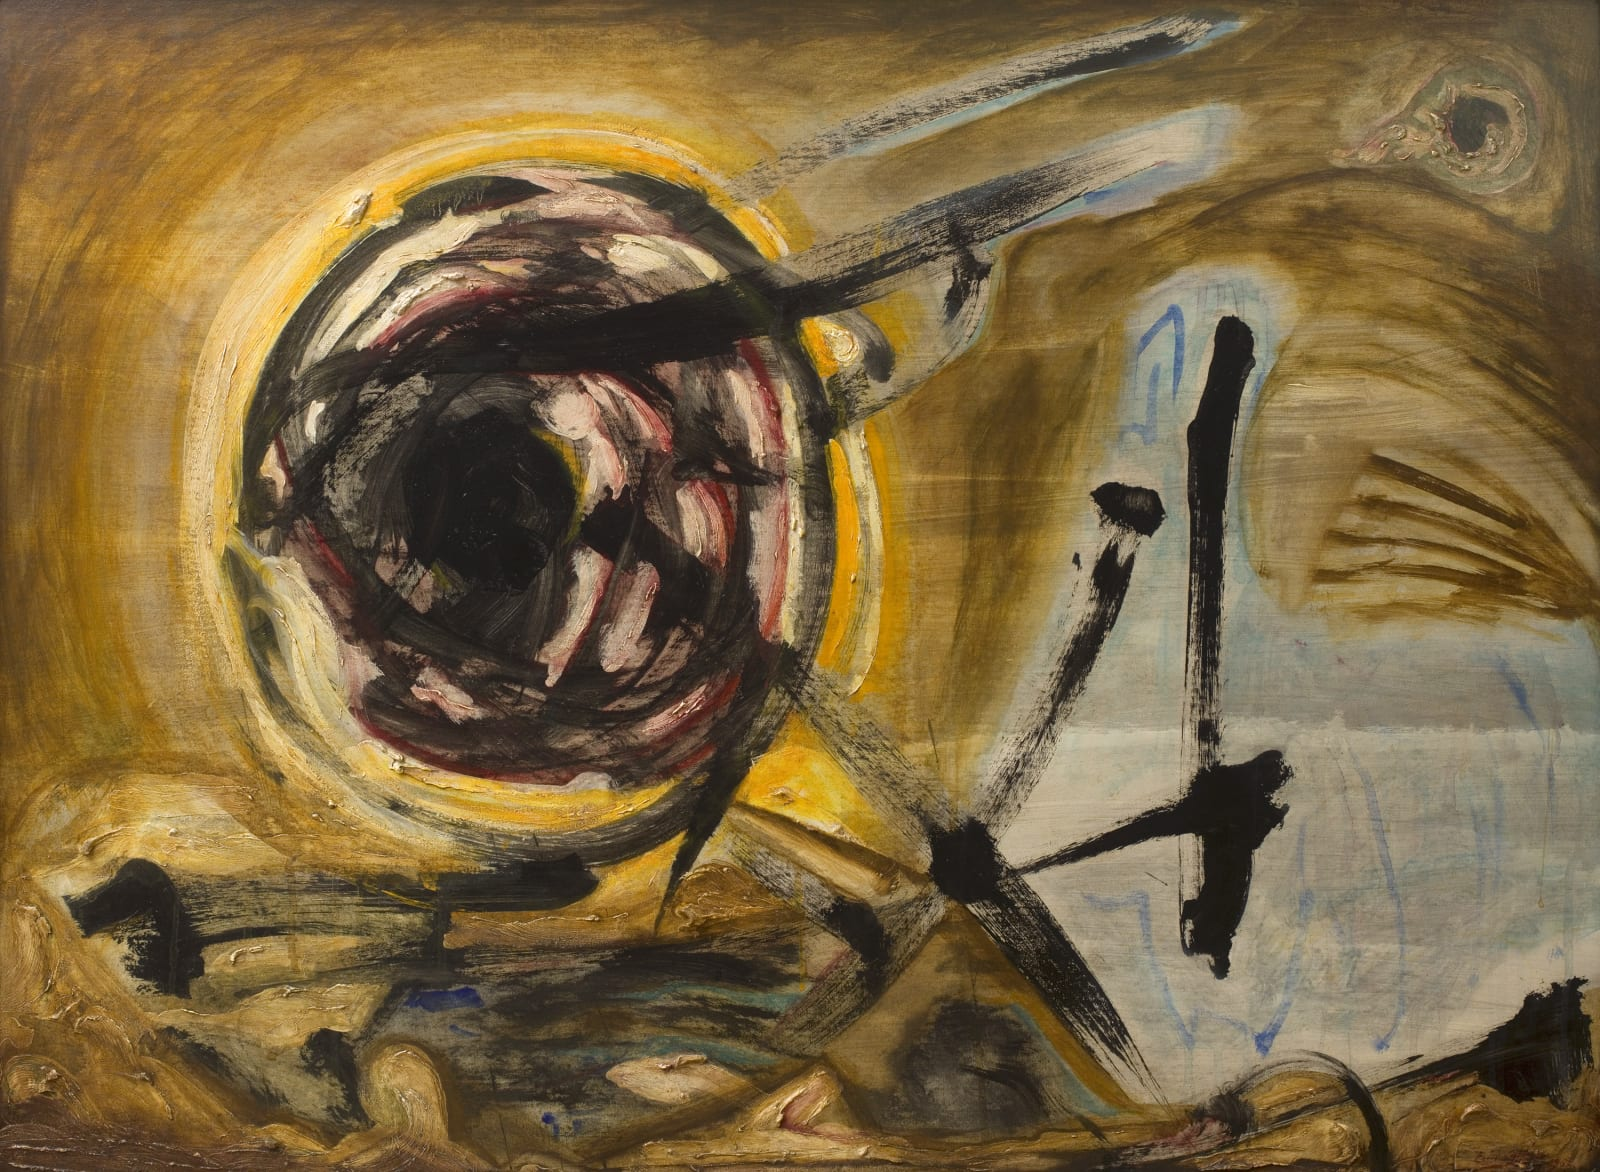 Cecil Collins, The Waters of the Sun, 1962